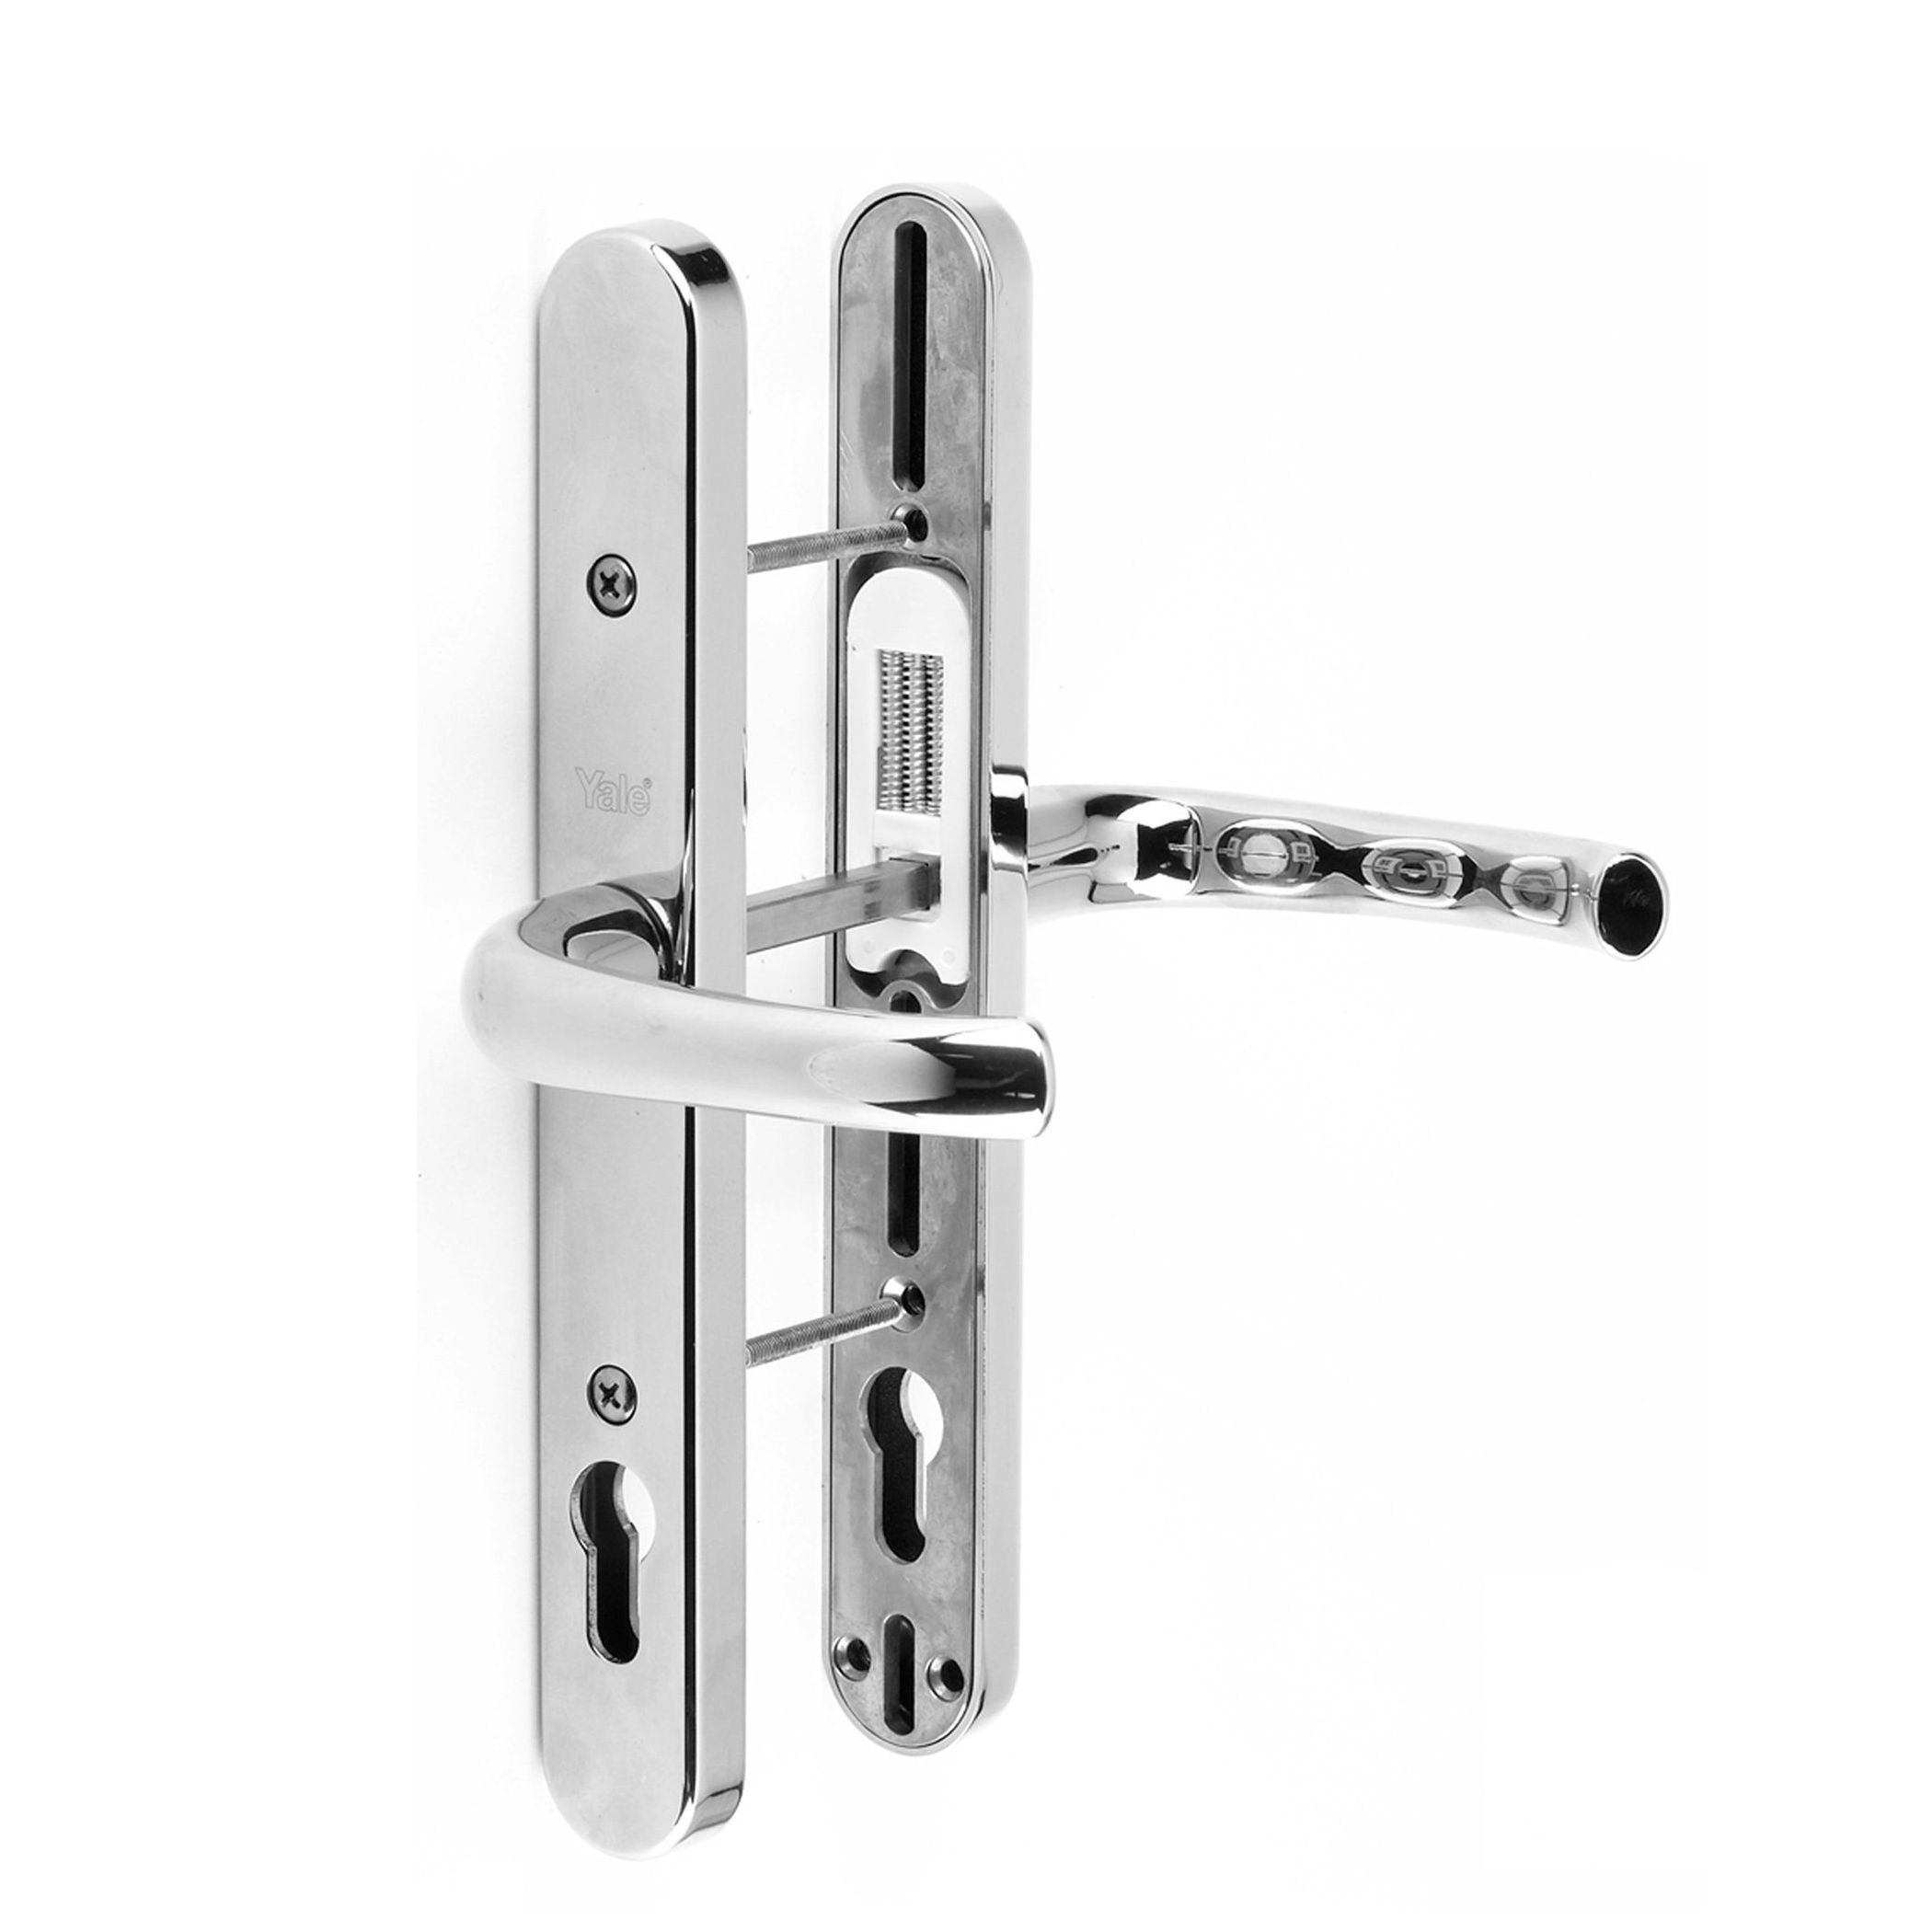 The Yale Adjustable Upvc Door Handles Are Ideal For The Screw Hole Centres Are Unknown Or If The Original Handl Upvc Door Handles Door Handle Sets Door Handles